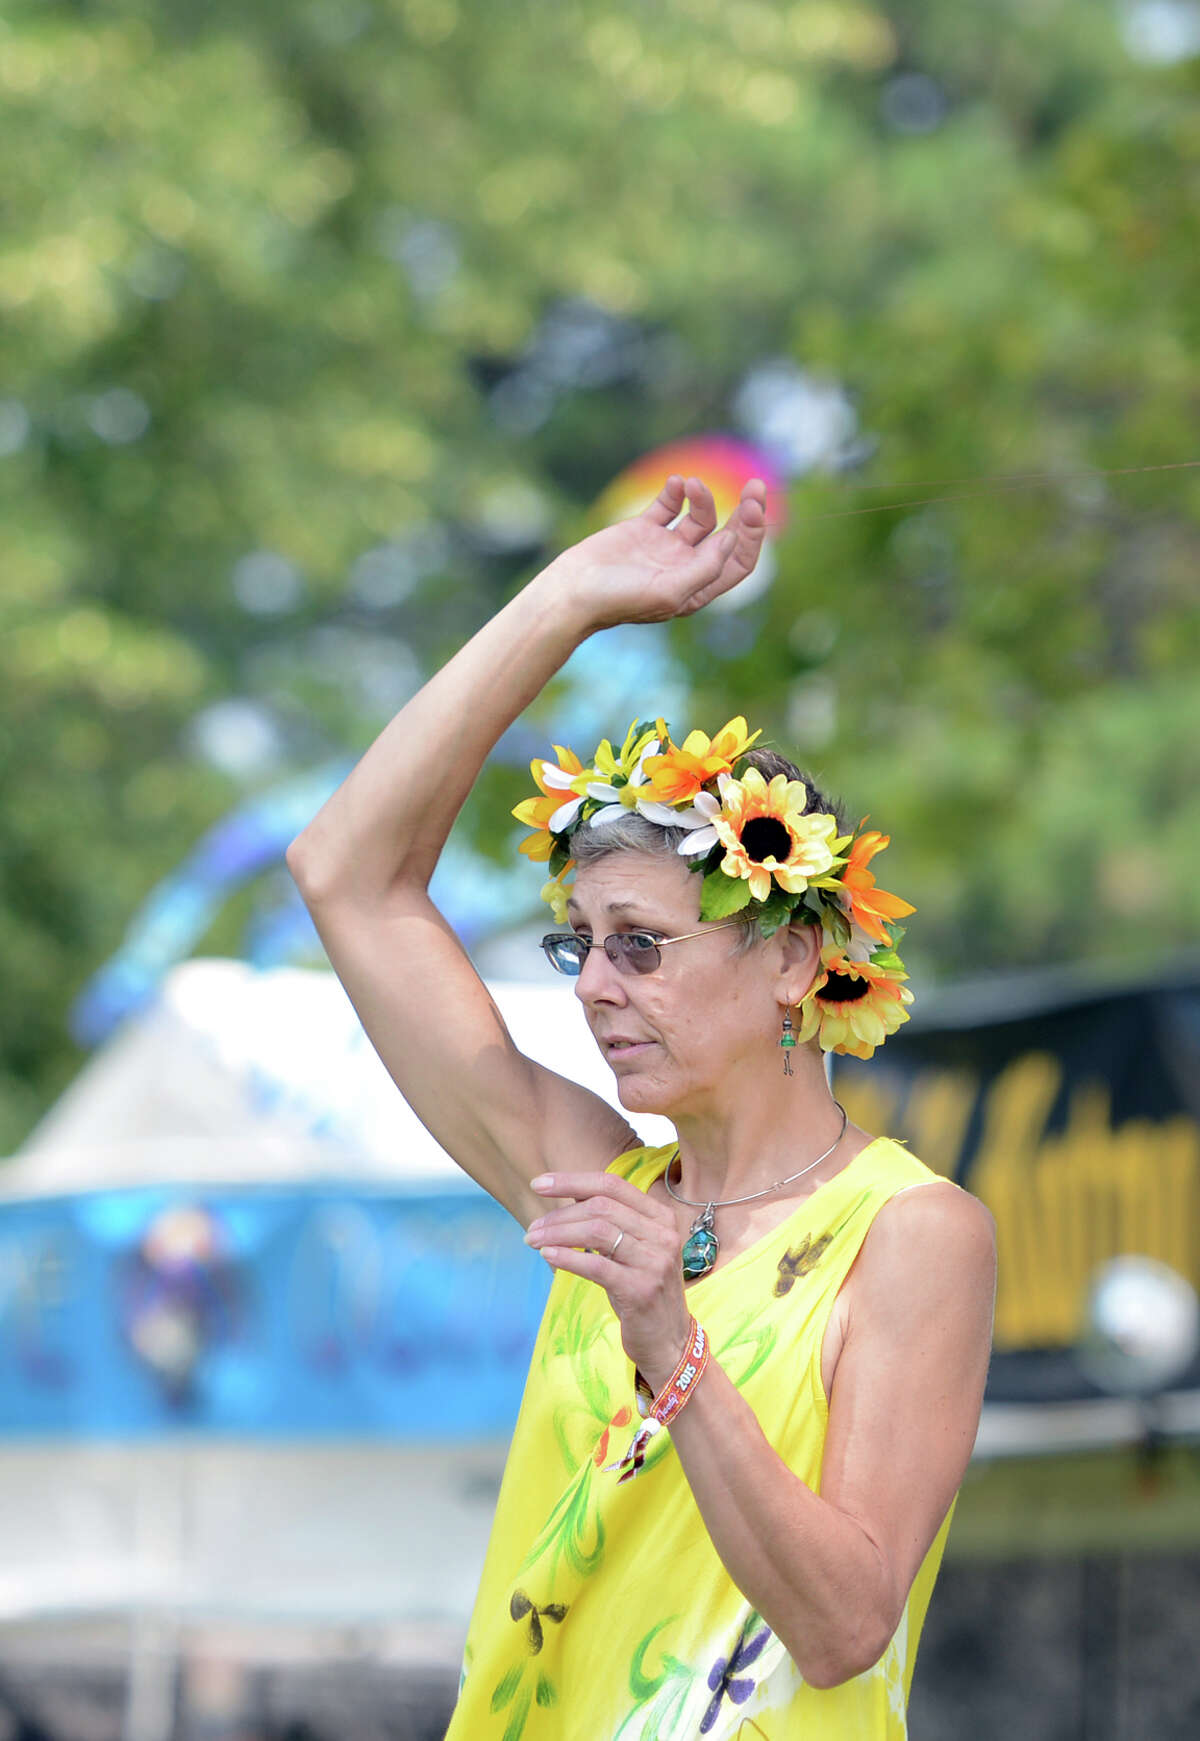 Tara Prindle, of Vernon, dances on the opening day of the 20th annual Gathering of the Vibes music festival Thursday, July 30, 2015 at Seaside Park in Bridgeport, Conn.